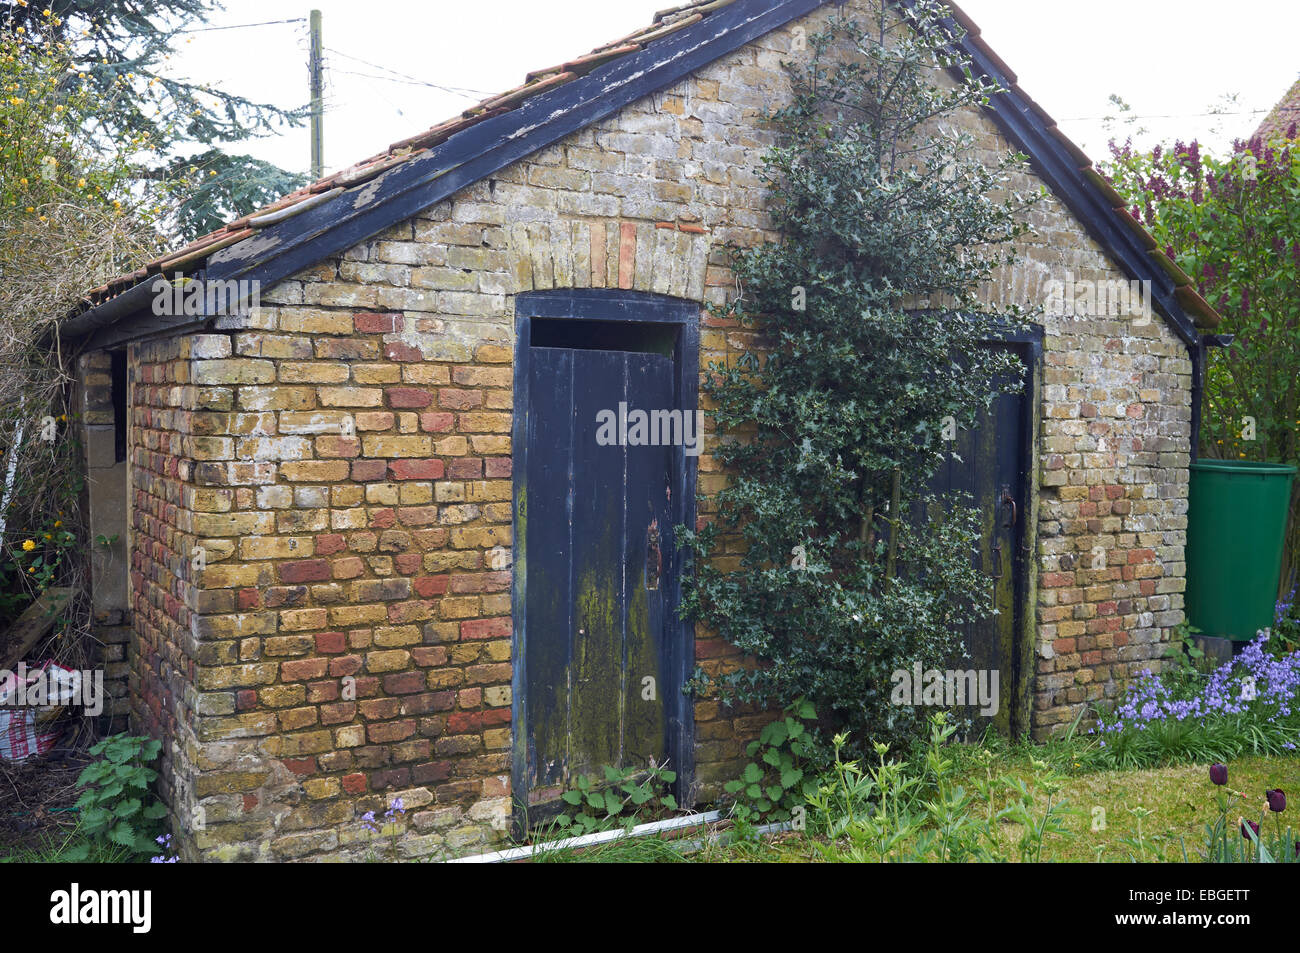 garden shed outside toilet stock image - Garden Sheds Nottingham